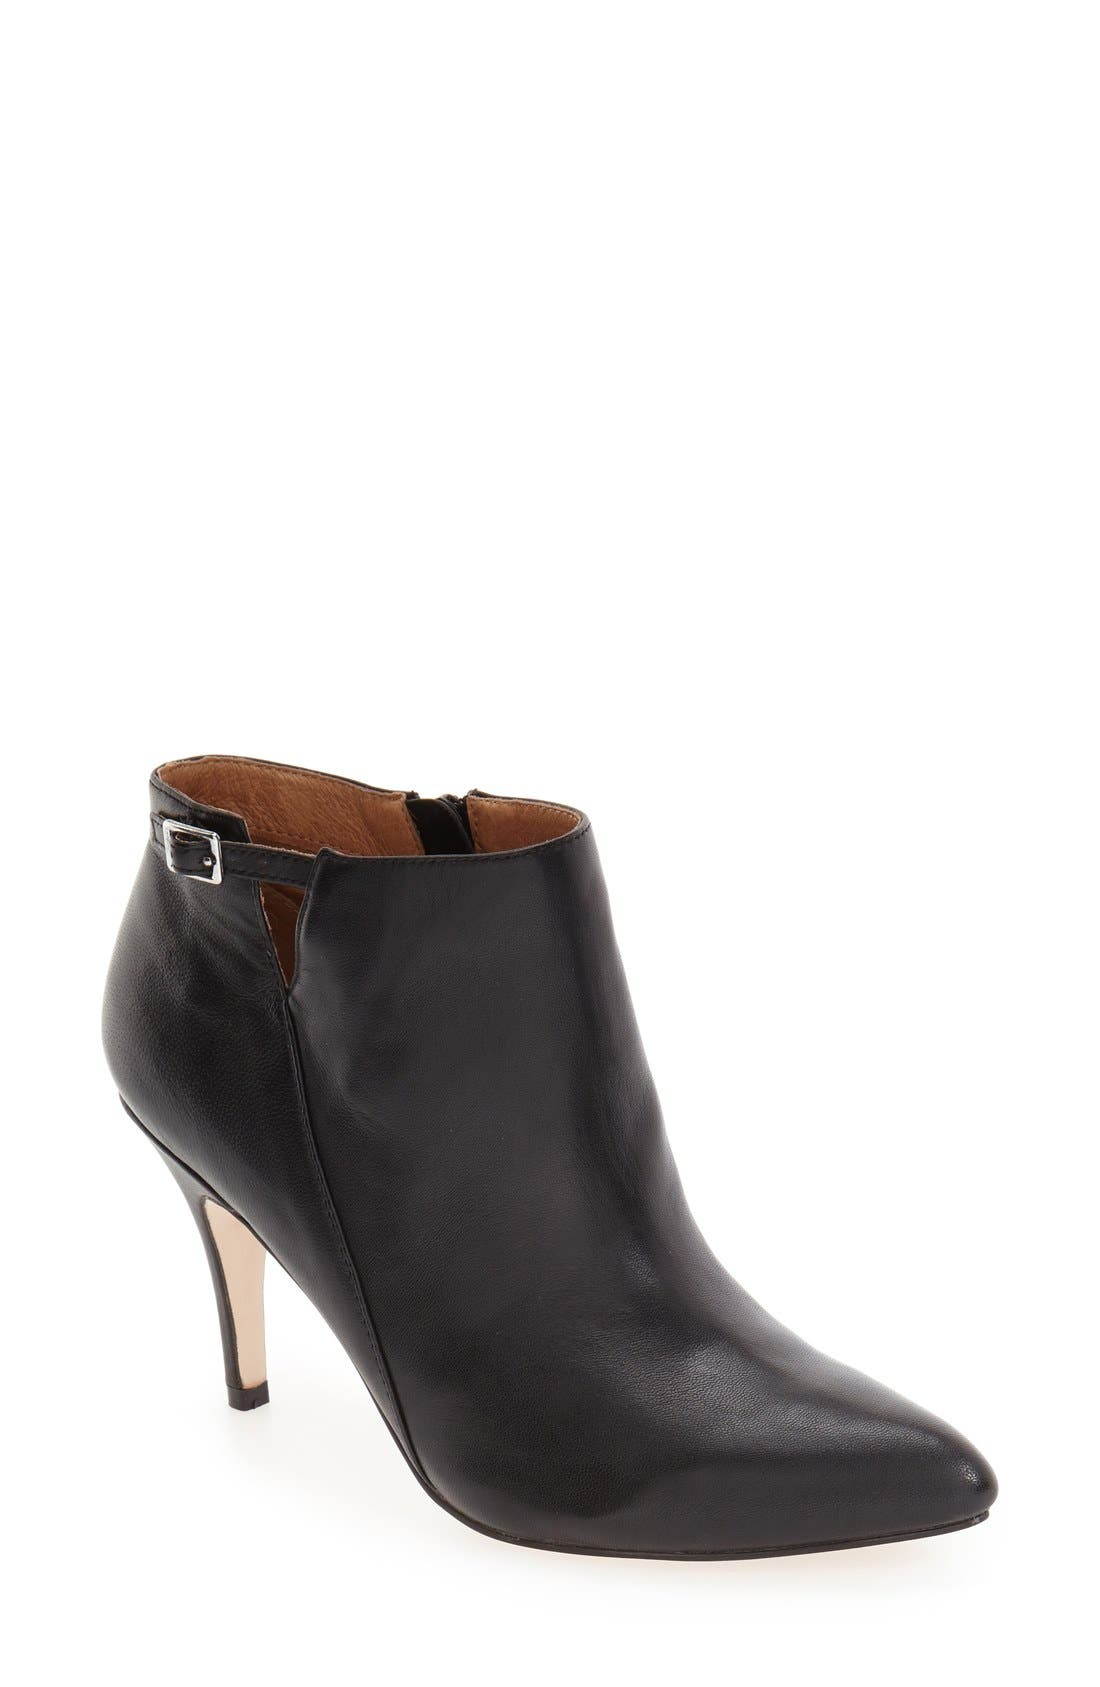 'Roster' Pointy Toe Bootie,                         Main,                         color, 001